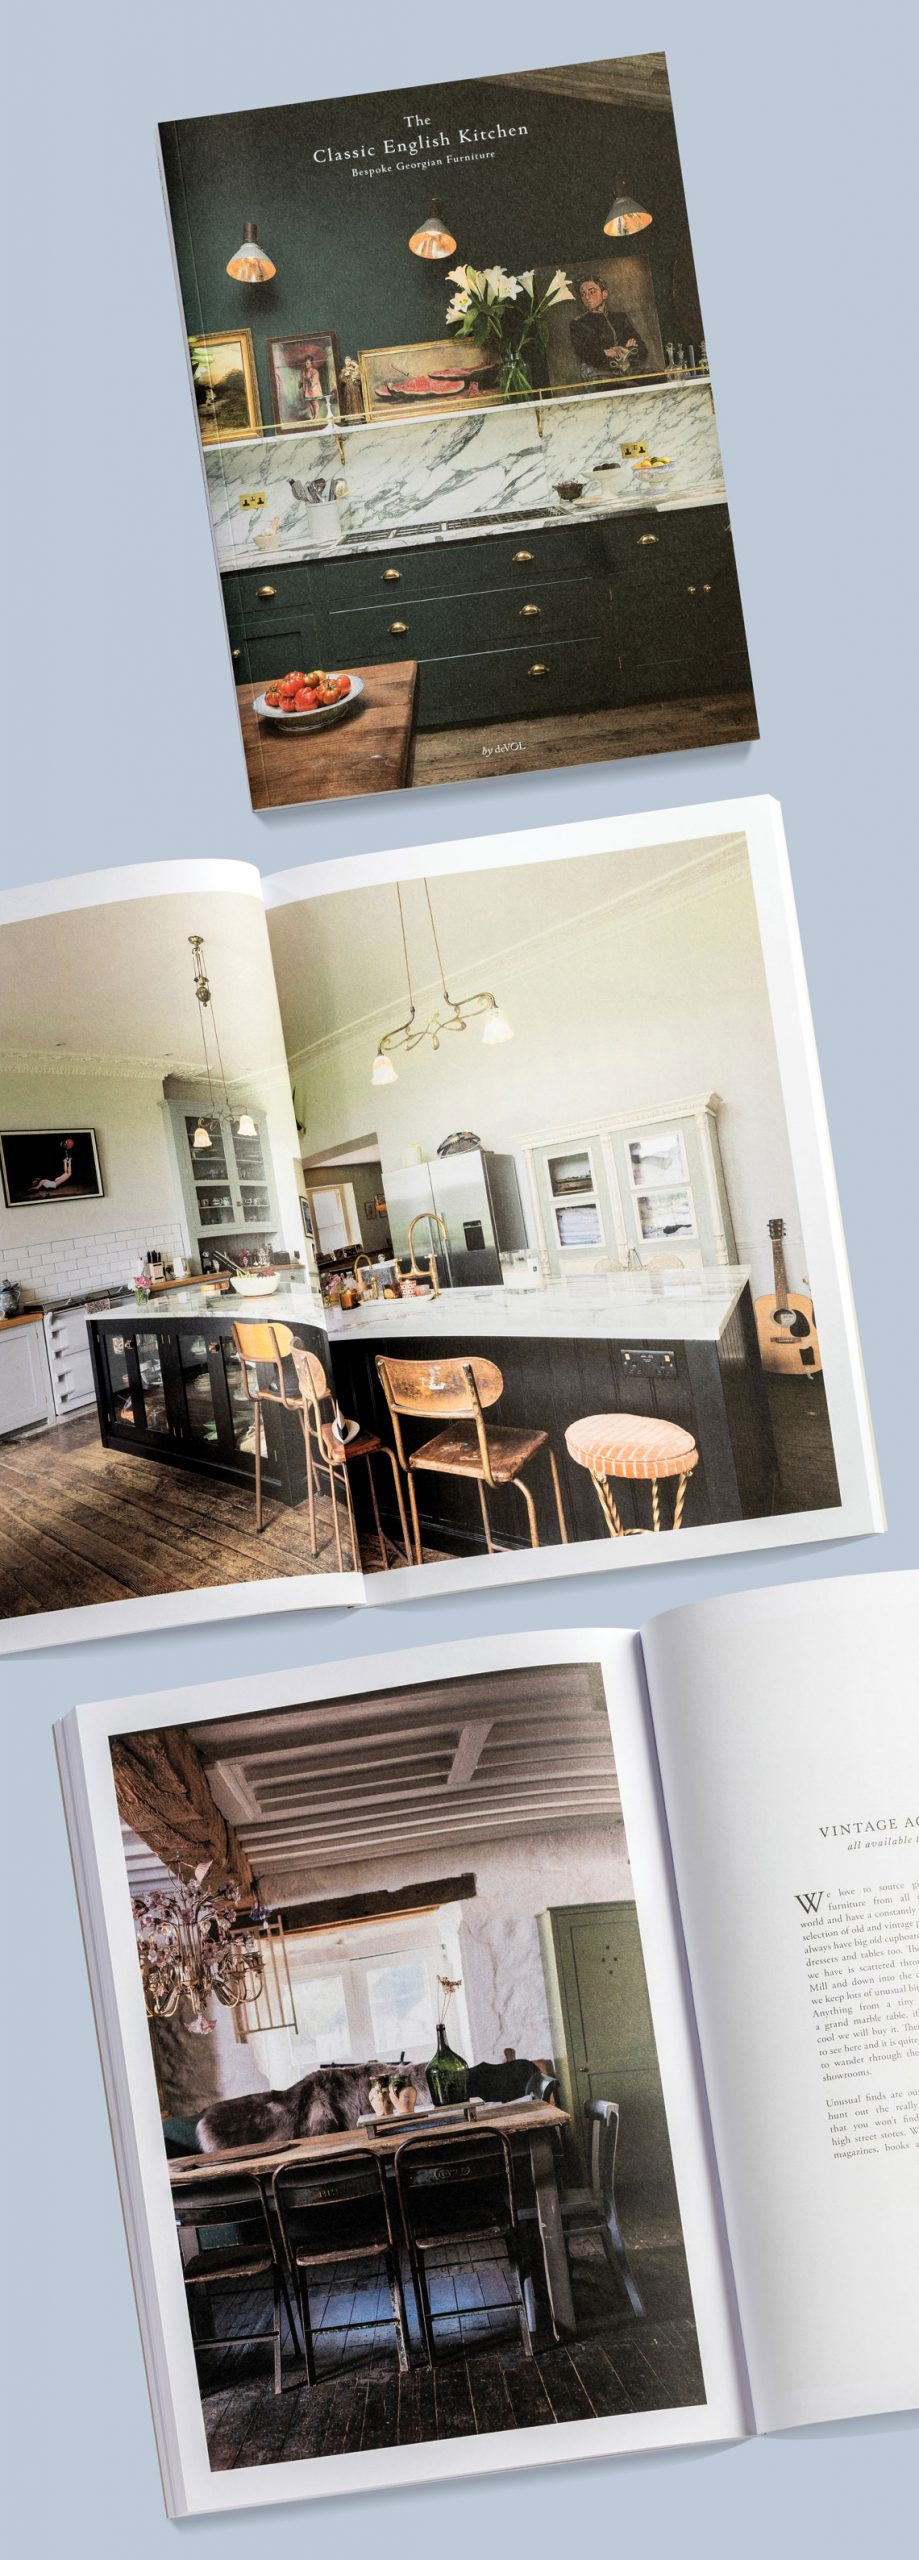 The Classic English Kitchen